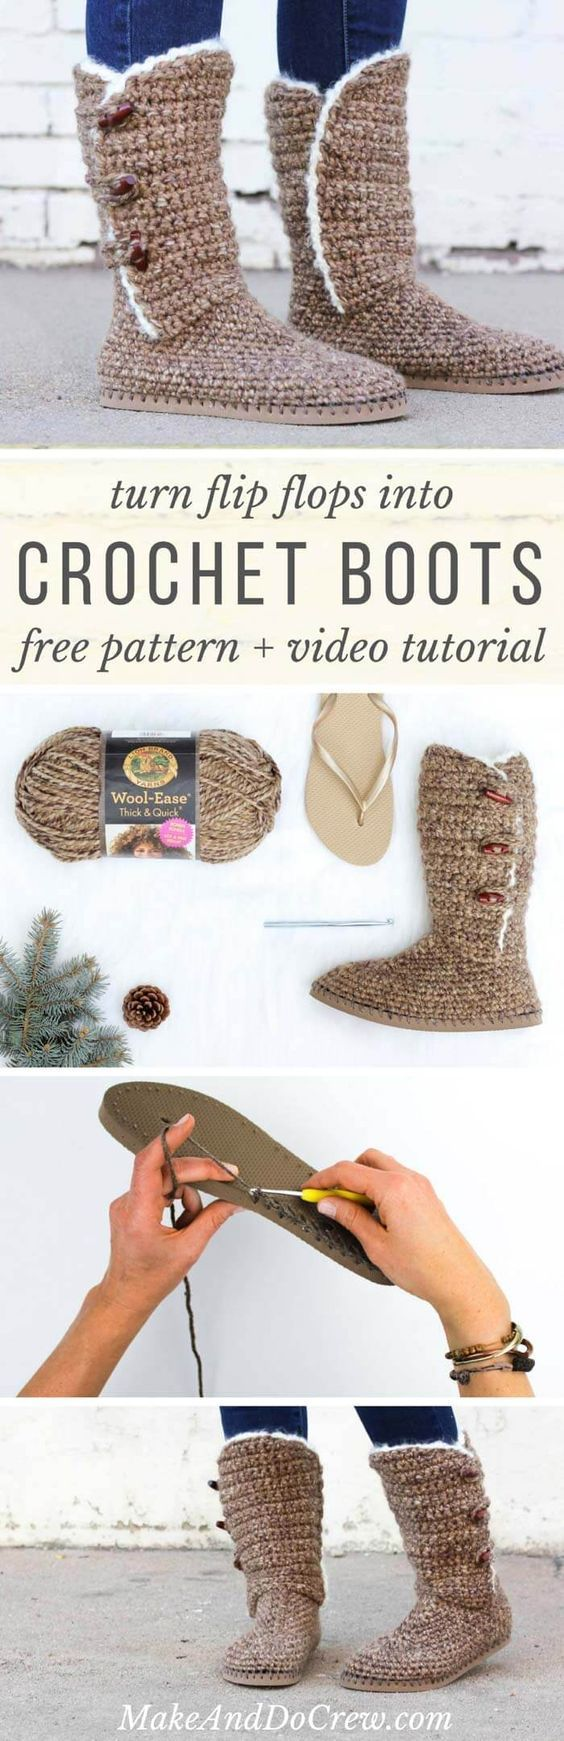 Crochet Boots With Flip Flop Soles Free Pattern Video All